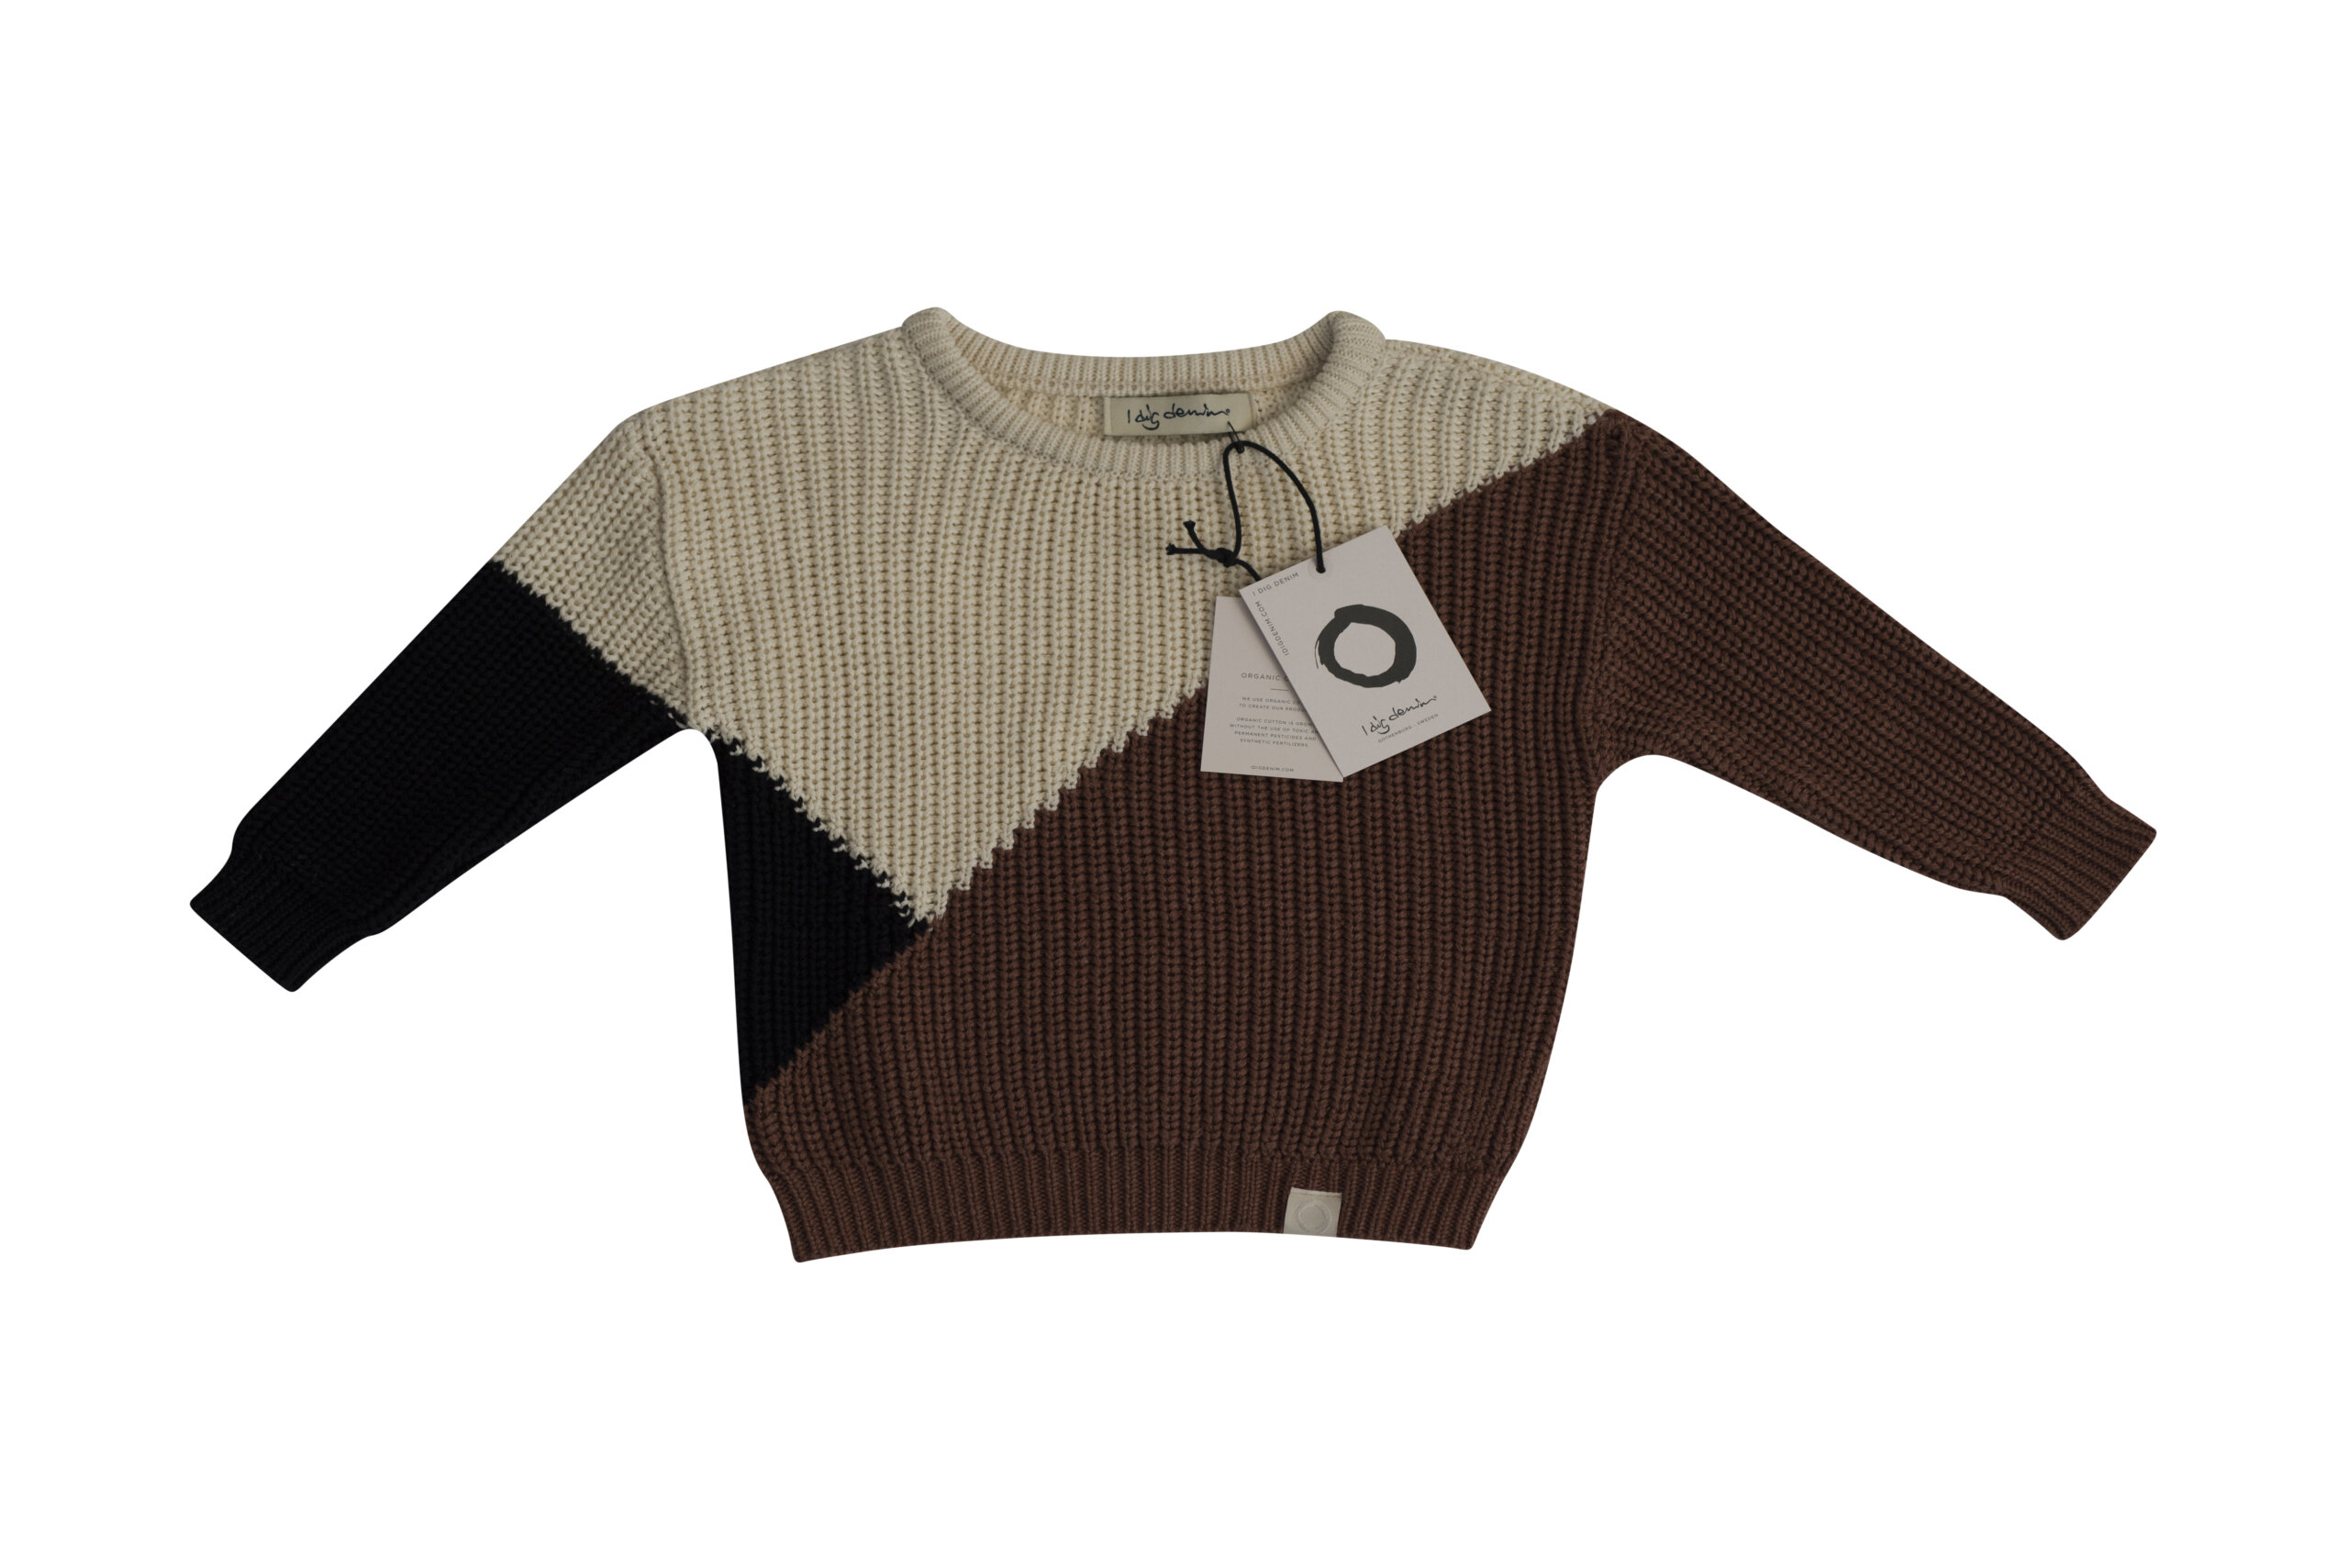 Bobby knitted sweater